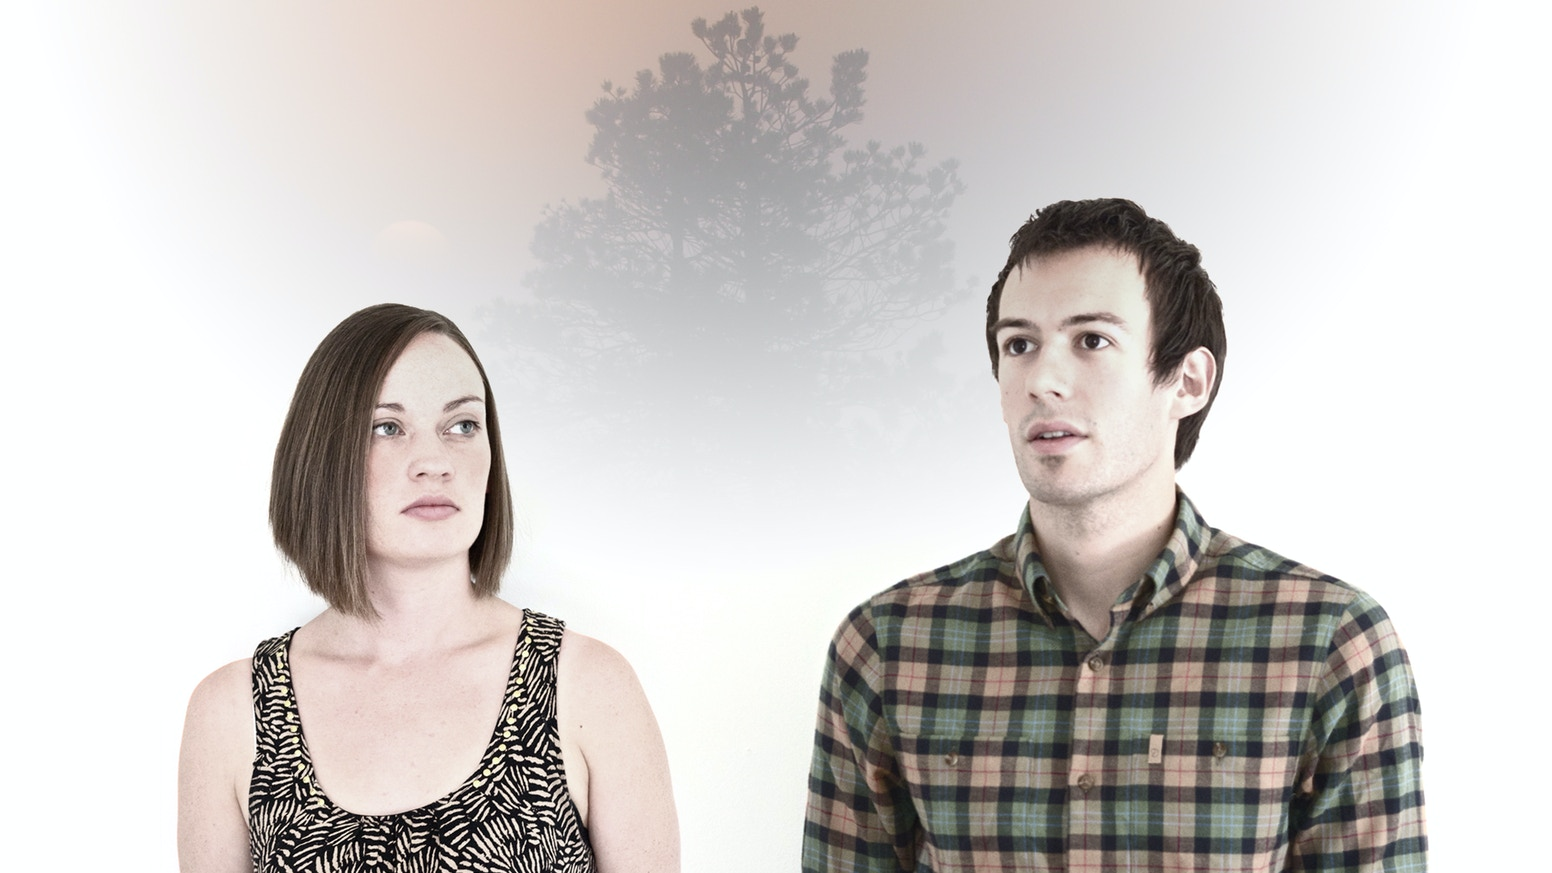 Independent Christian duo Salt of the Sound are creating their second full length album and with your help, it will be our best yet!